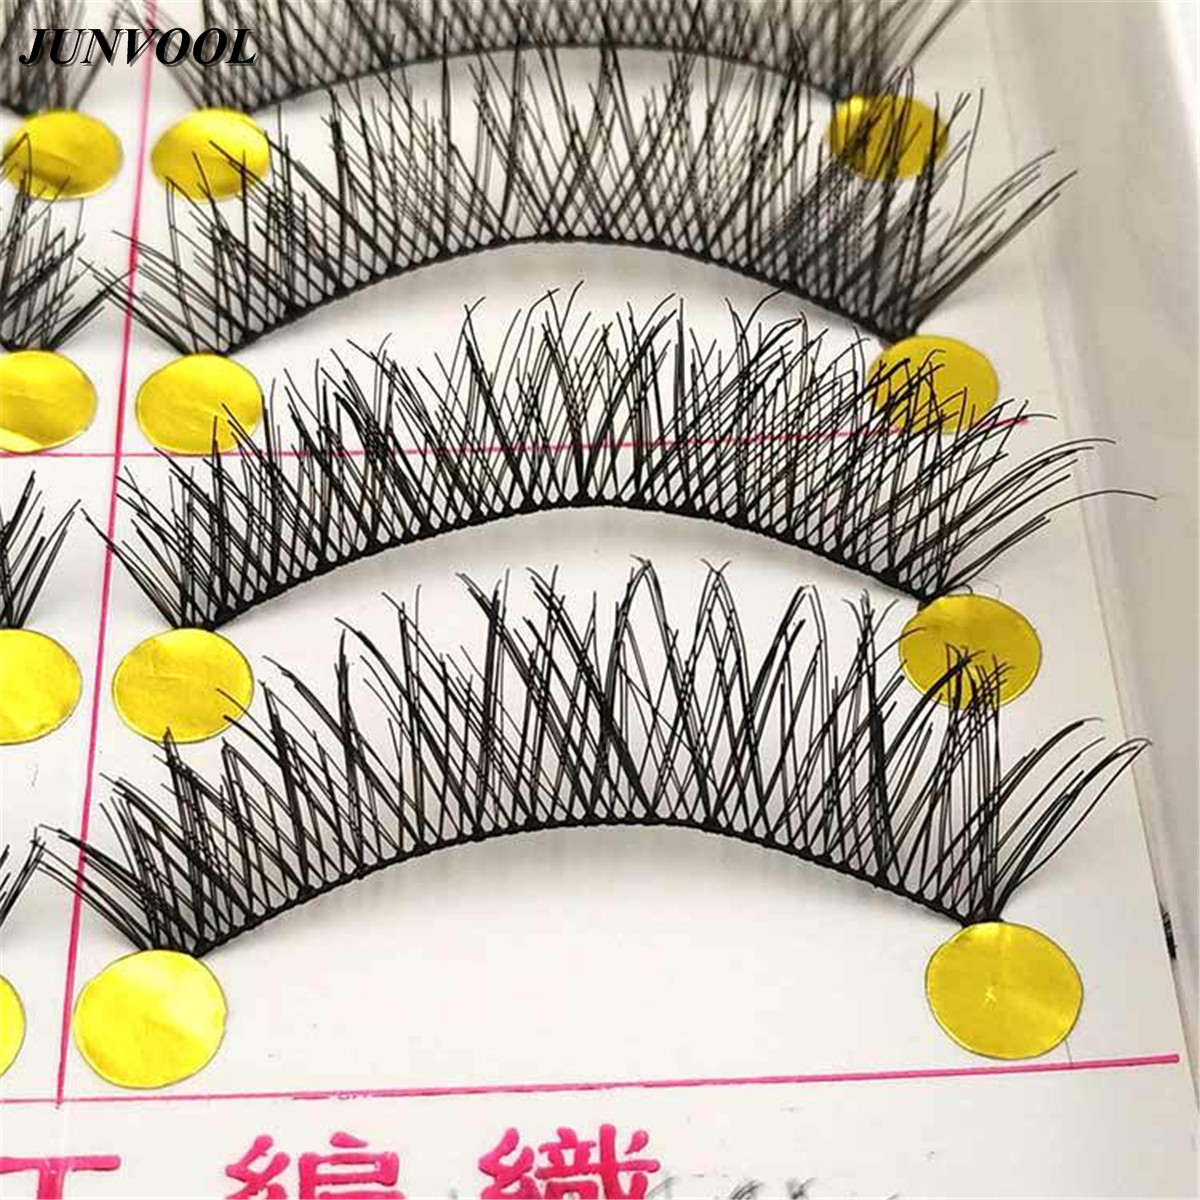 10 Pairs Handmade False Eyelashes Thick Black Cotton Stretch Fake False Eyelash Lashes Makeup Tips Natural Fake Eye Lash